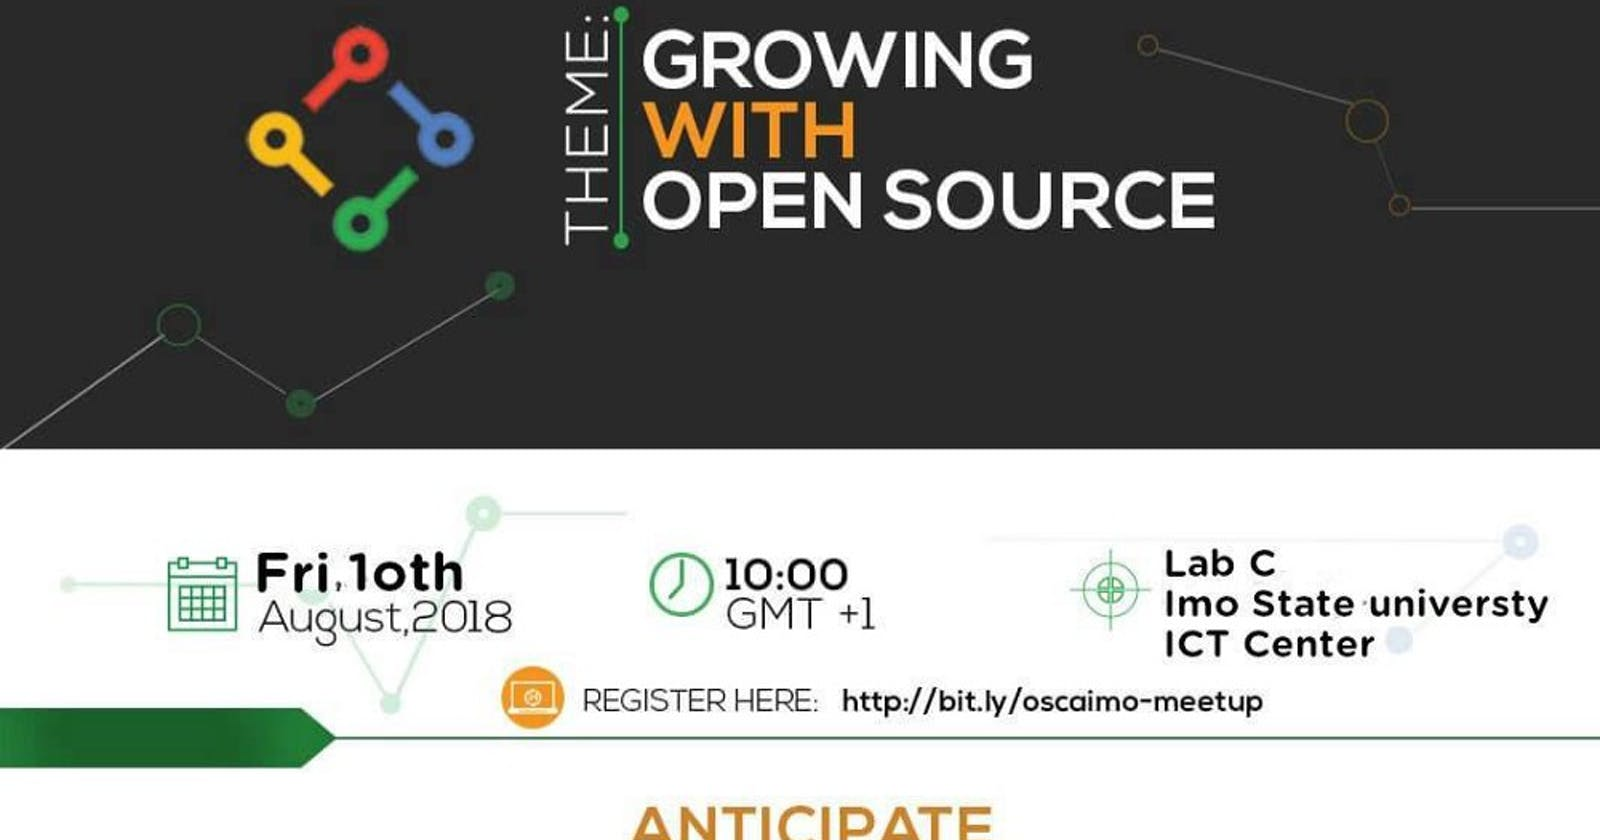 GROWING WITH OPEN SOURCE IN IMO STATE